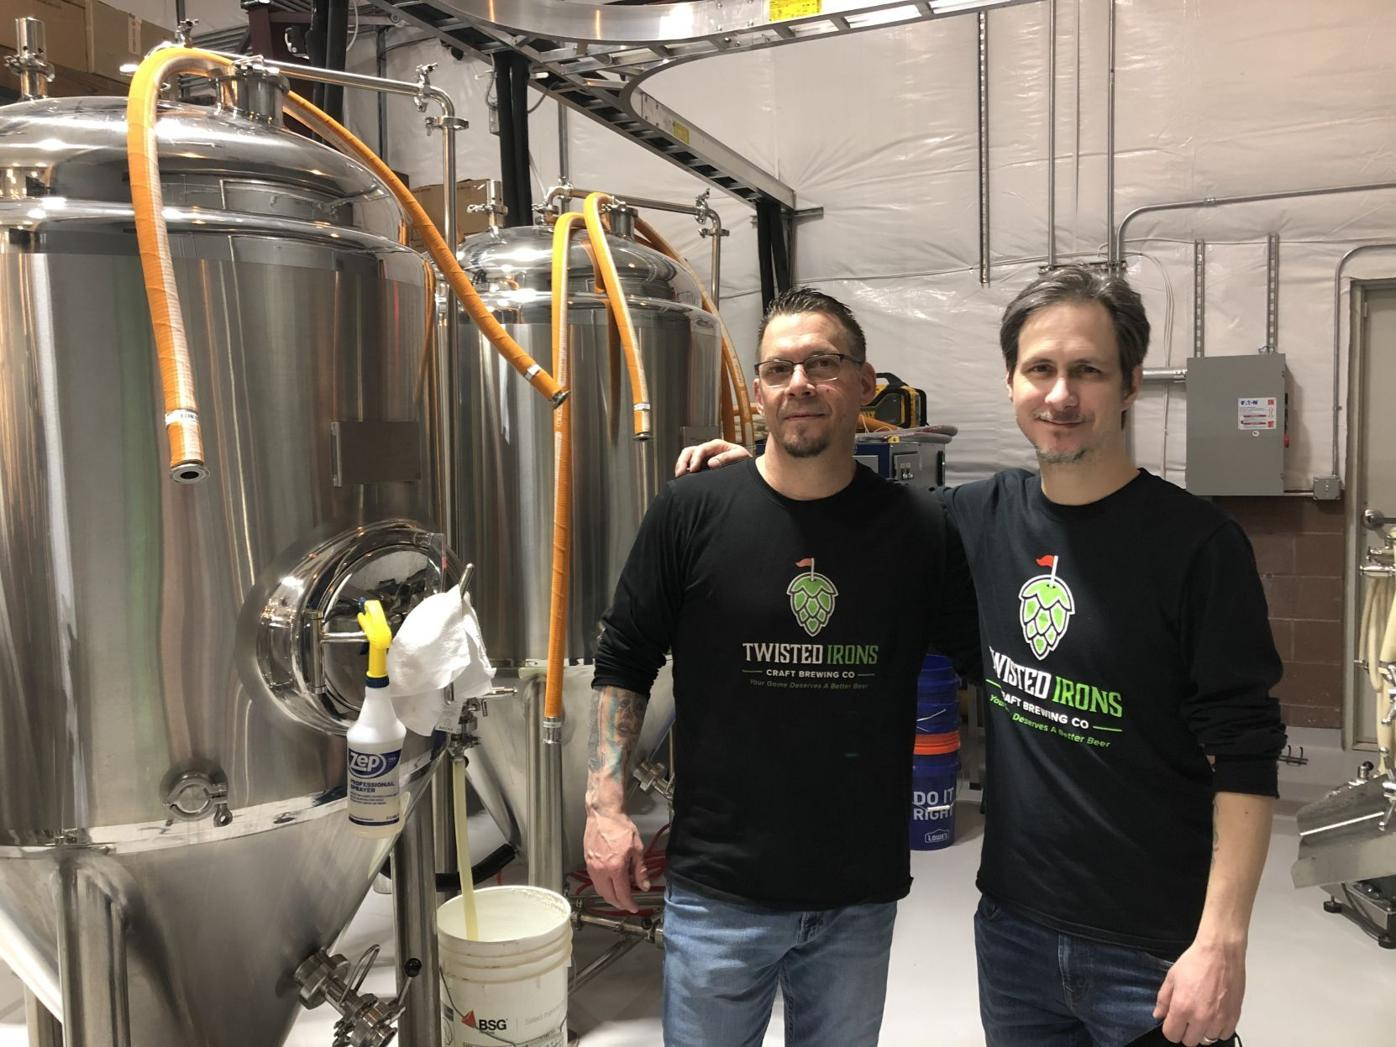 Twisted Irons Brewing